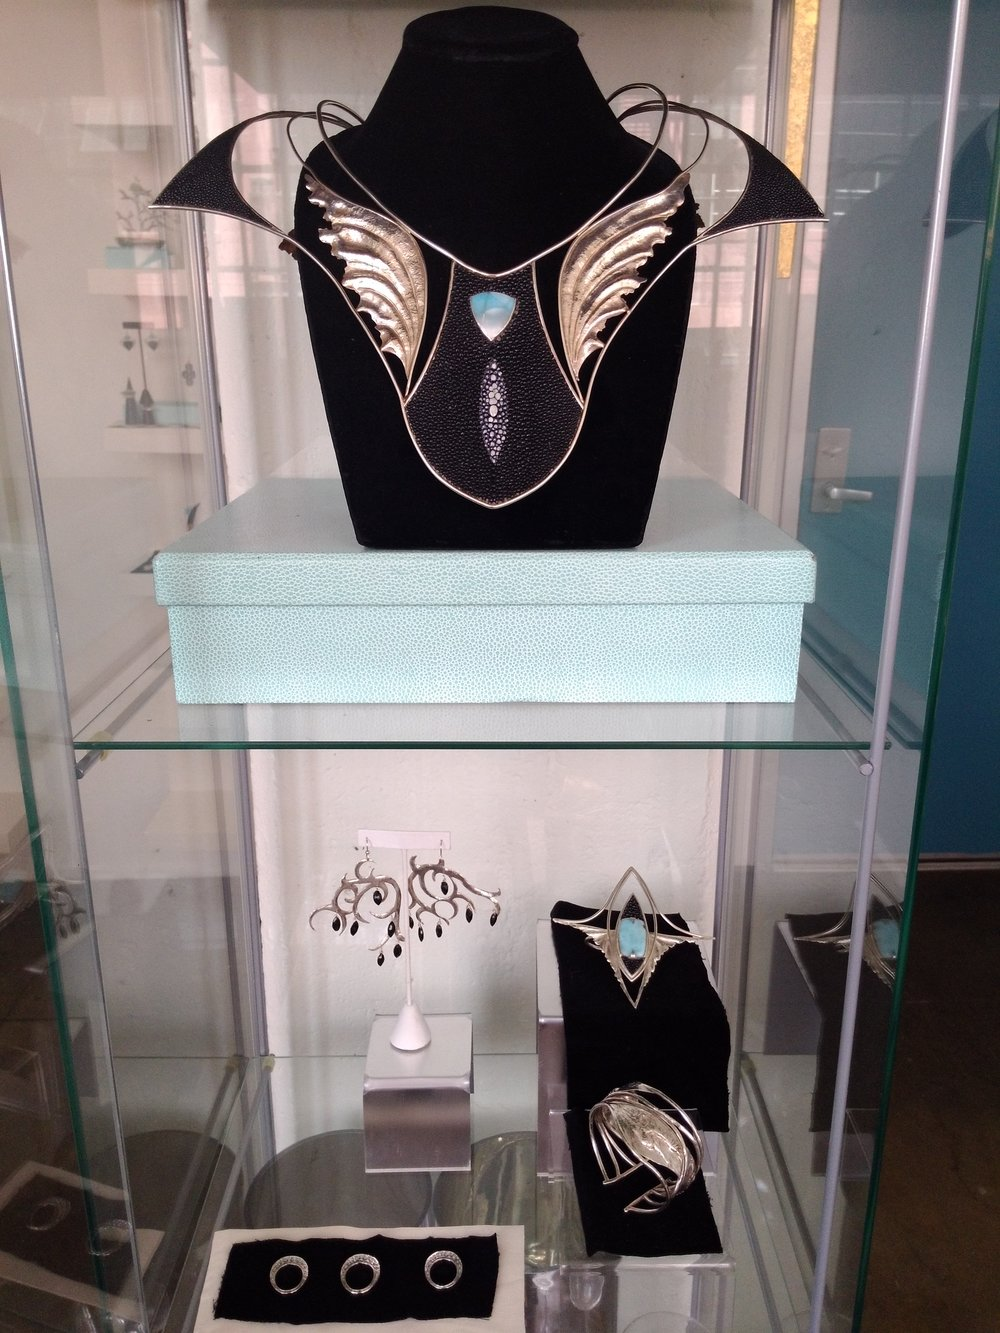 One of a kind pieces in fine silver, stingray skin, larimar, black diamond, and black onyx.